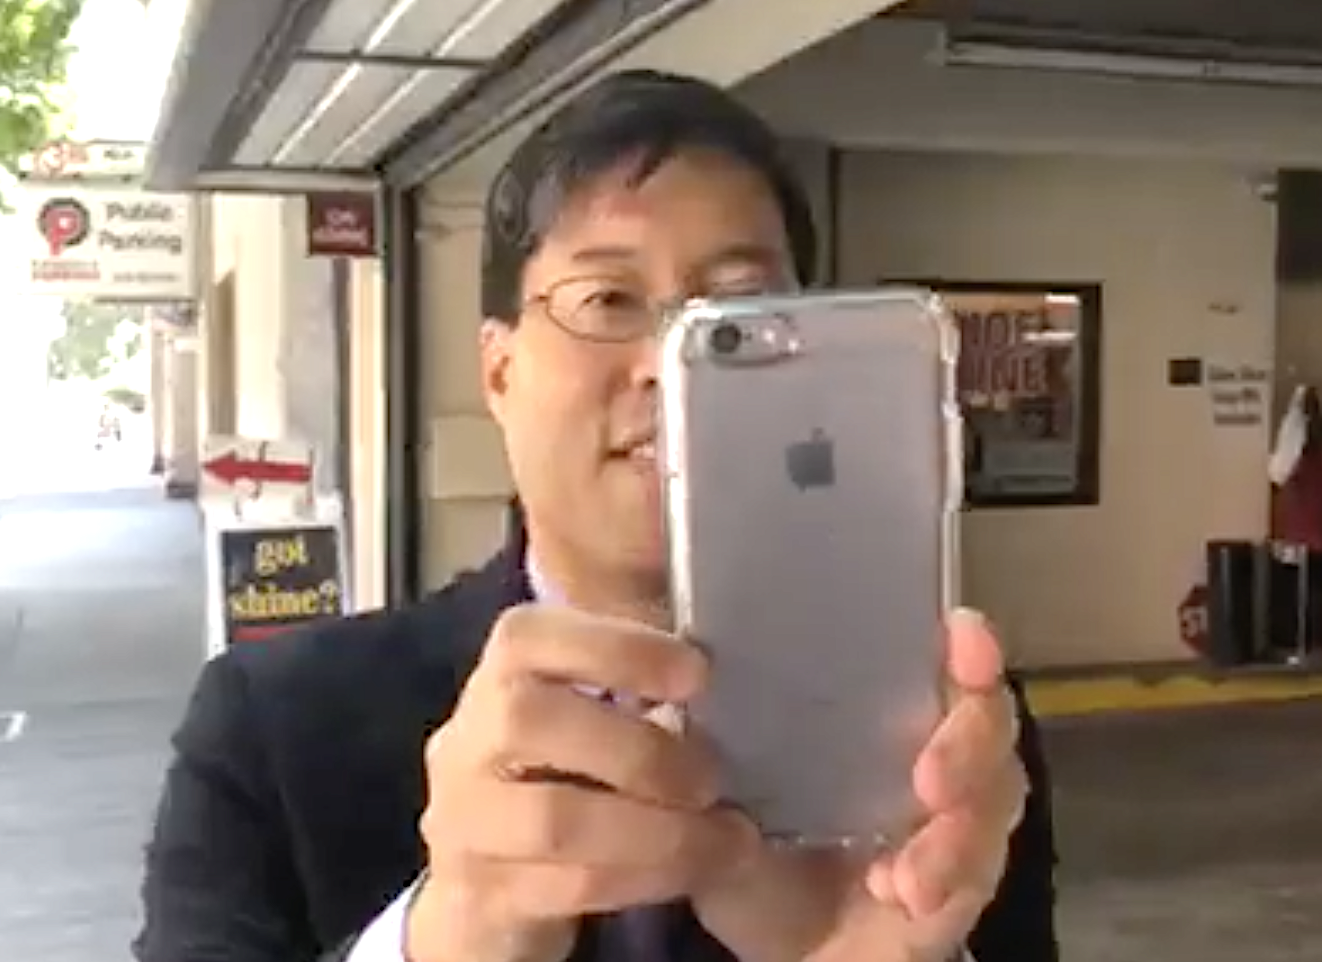 Anti-vaxxer posts video of himself assaulting senator who authored law that limits vaccine exemptions